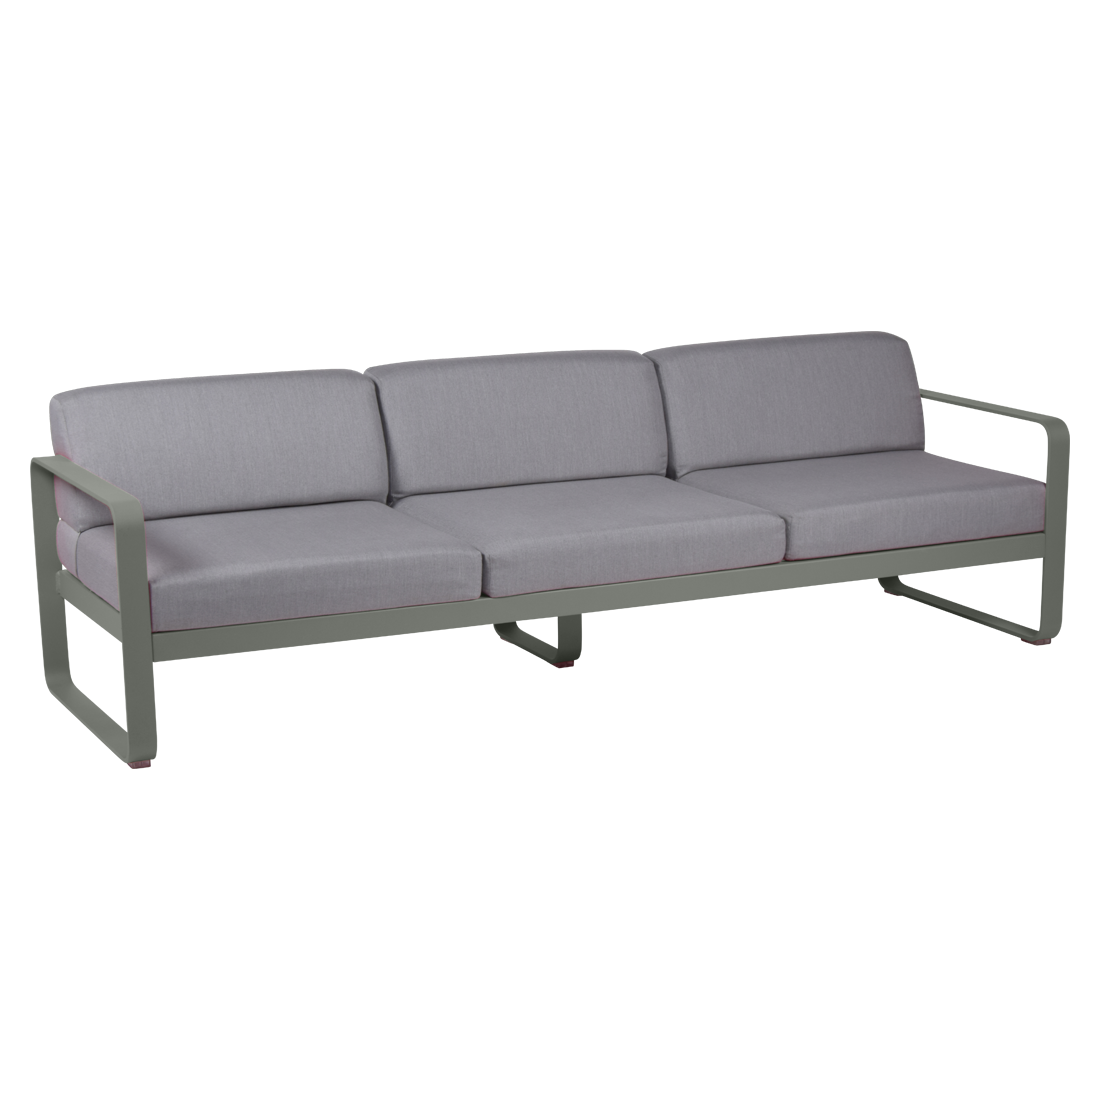 Bellevie 3 Seater Sofa With Flannel Grey Cushions Garden Sofa - Sofas-jardin